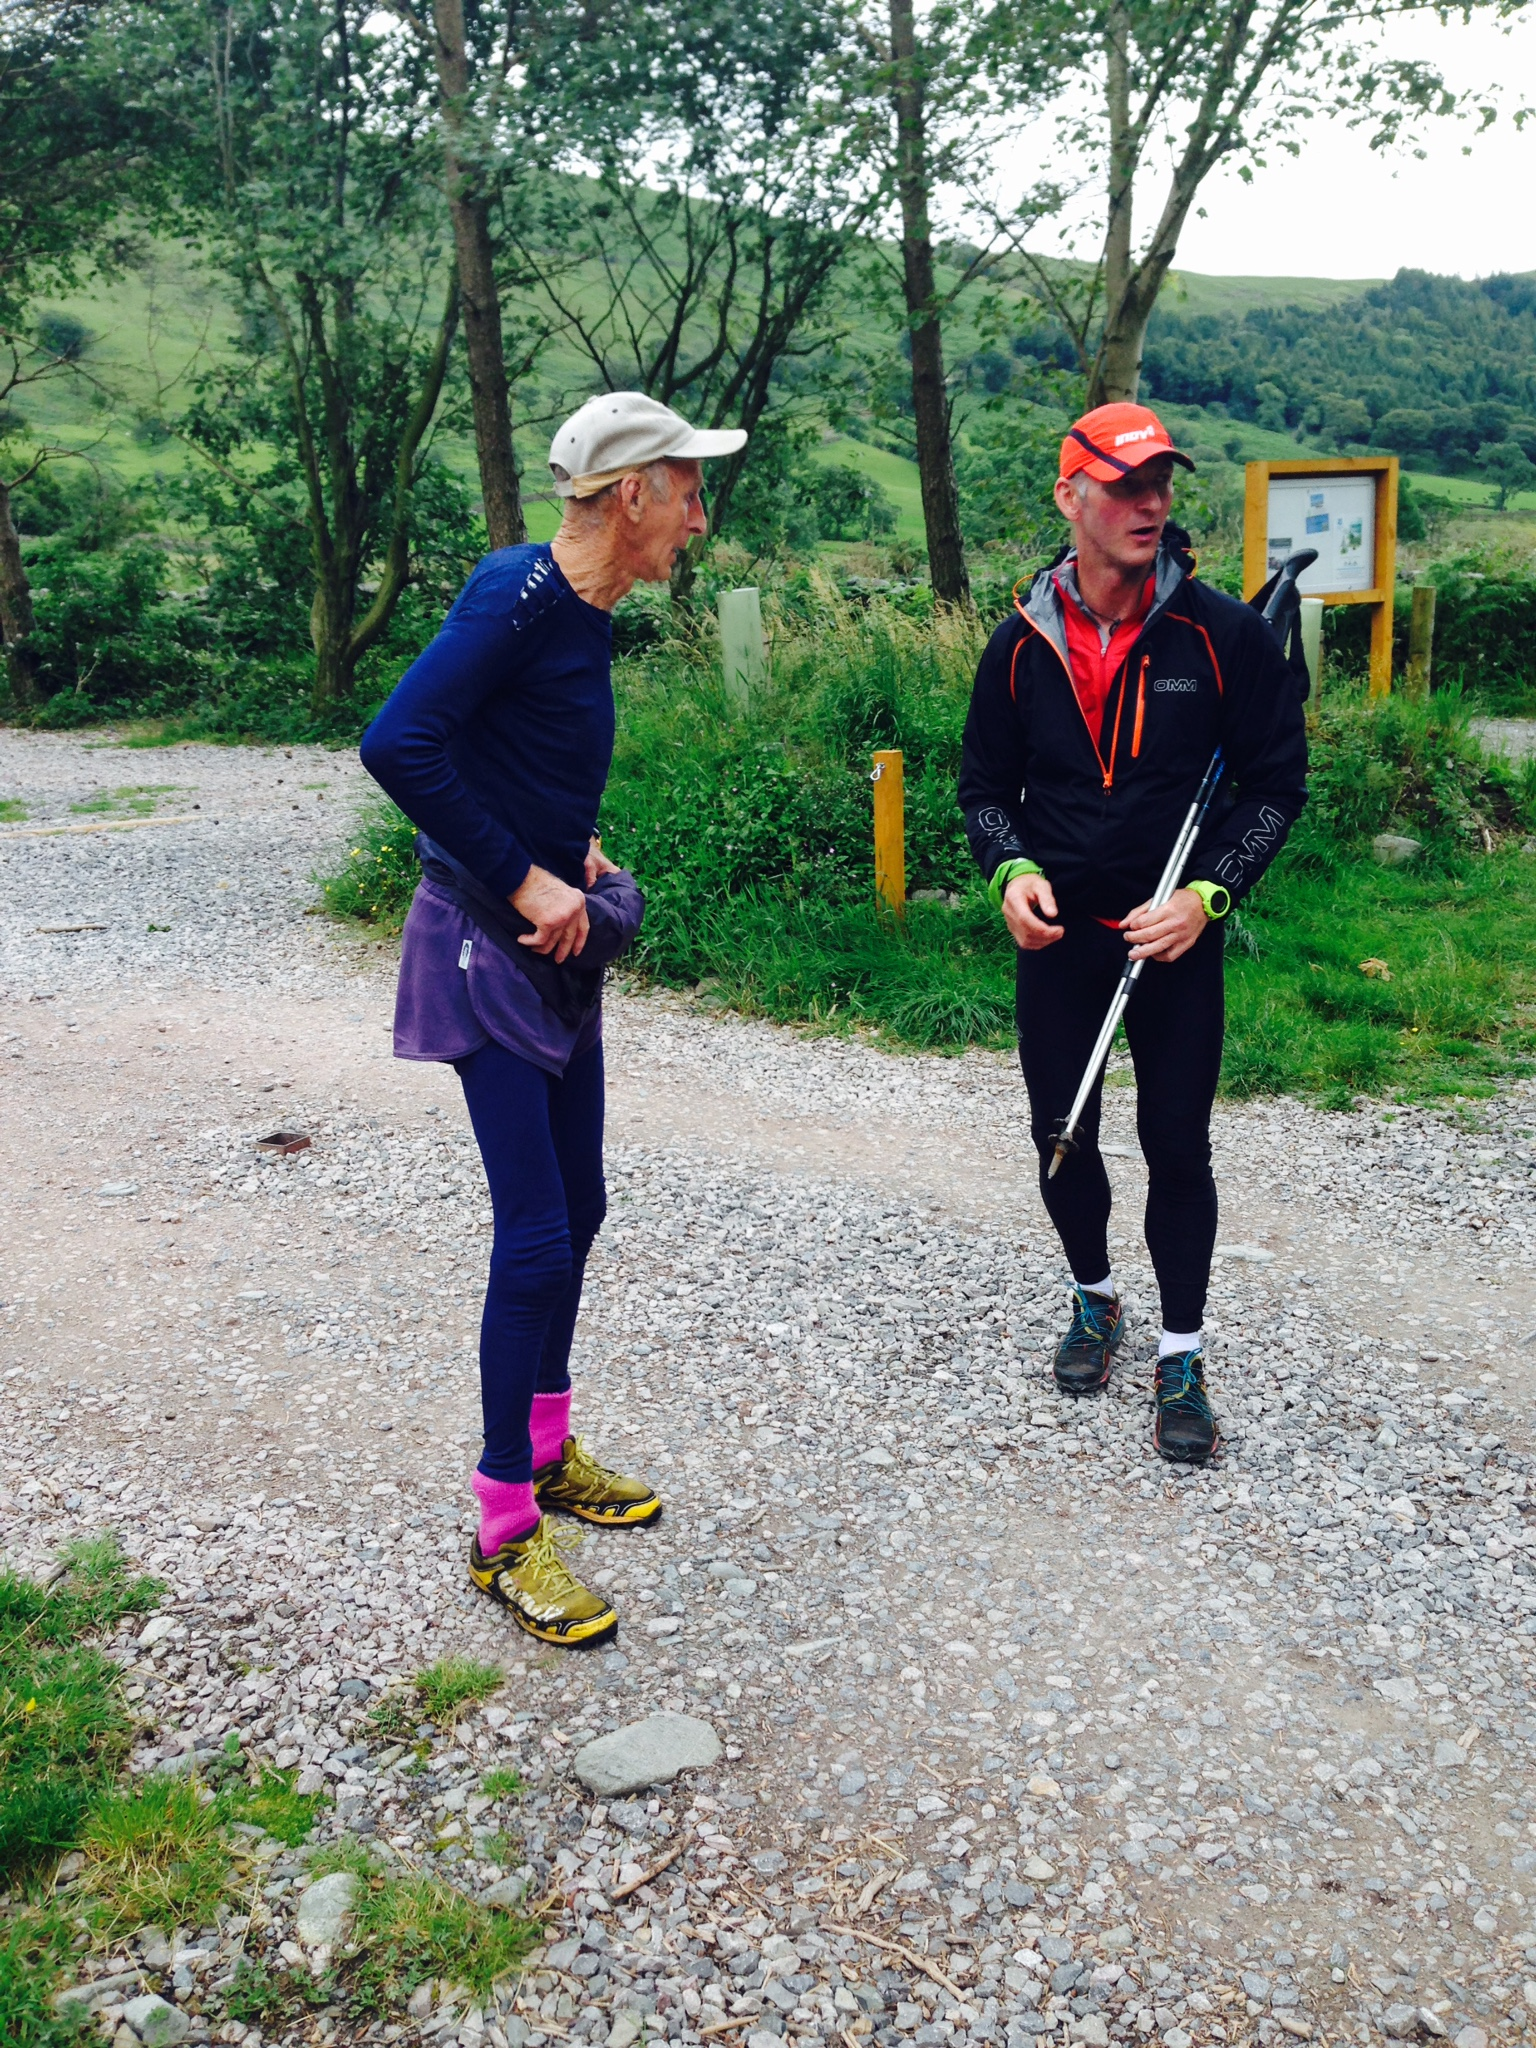 Tim is joined by fell-running legend Joss Naylor